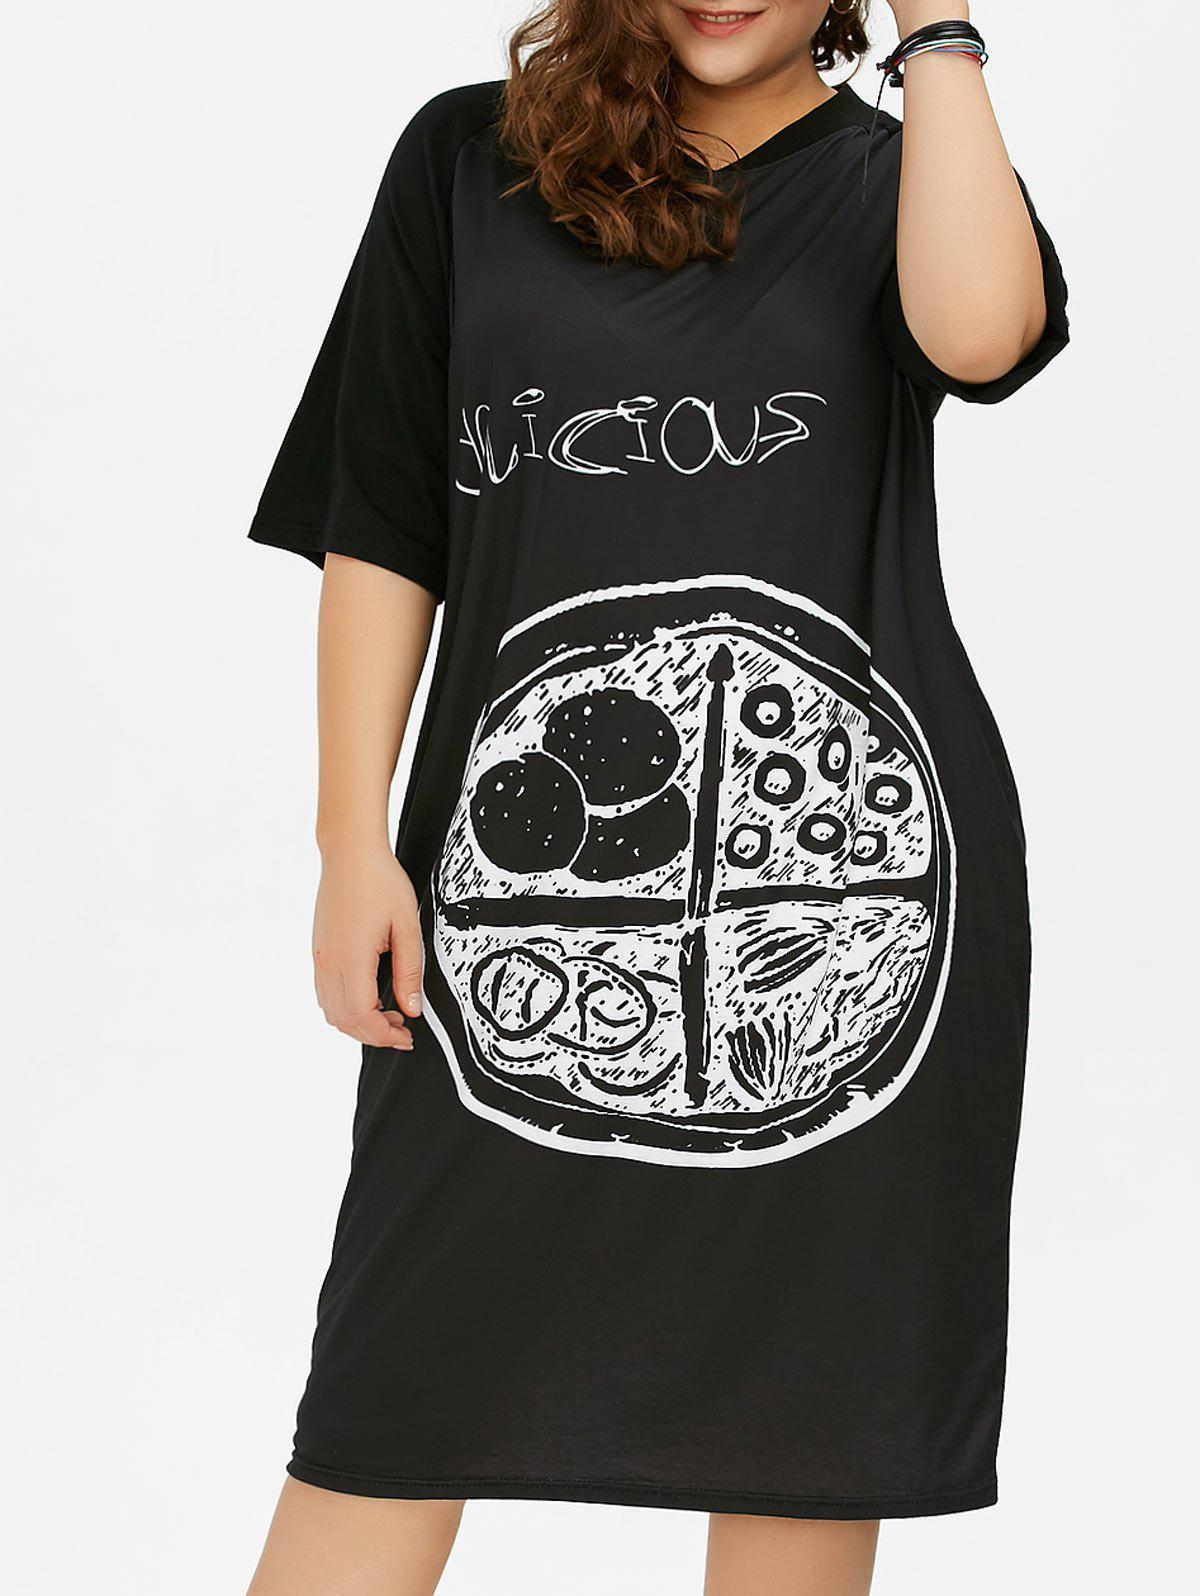 Plus Size Graffiti Baggy Graphic T-Shirt Dress